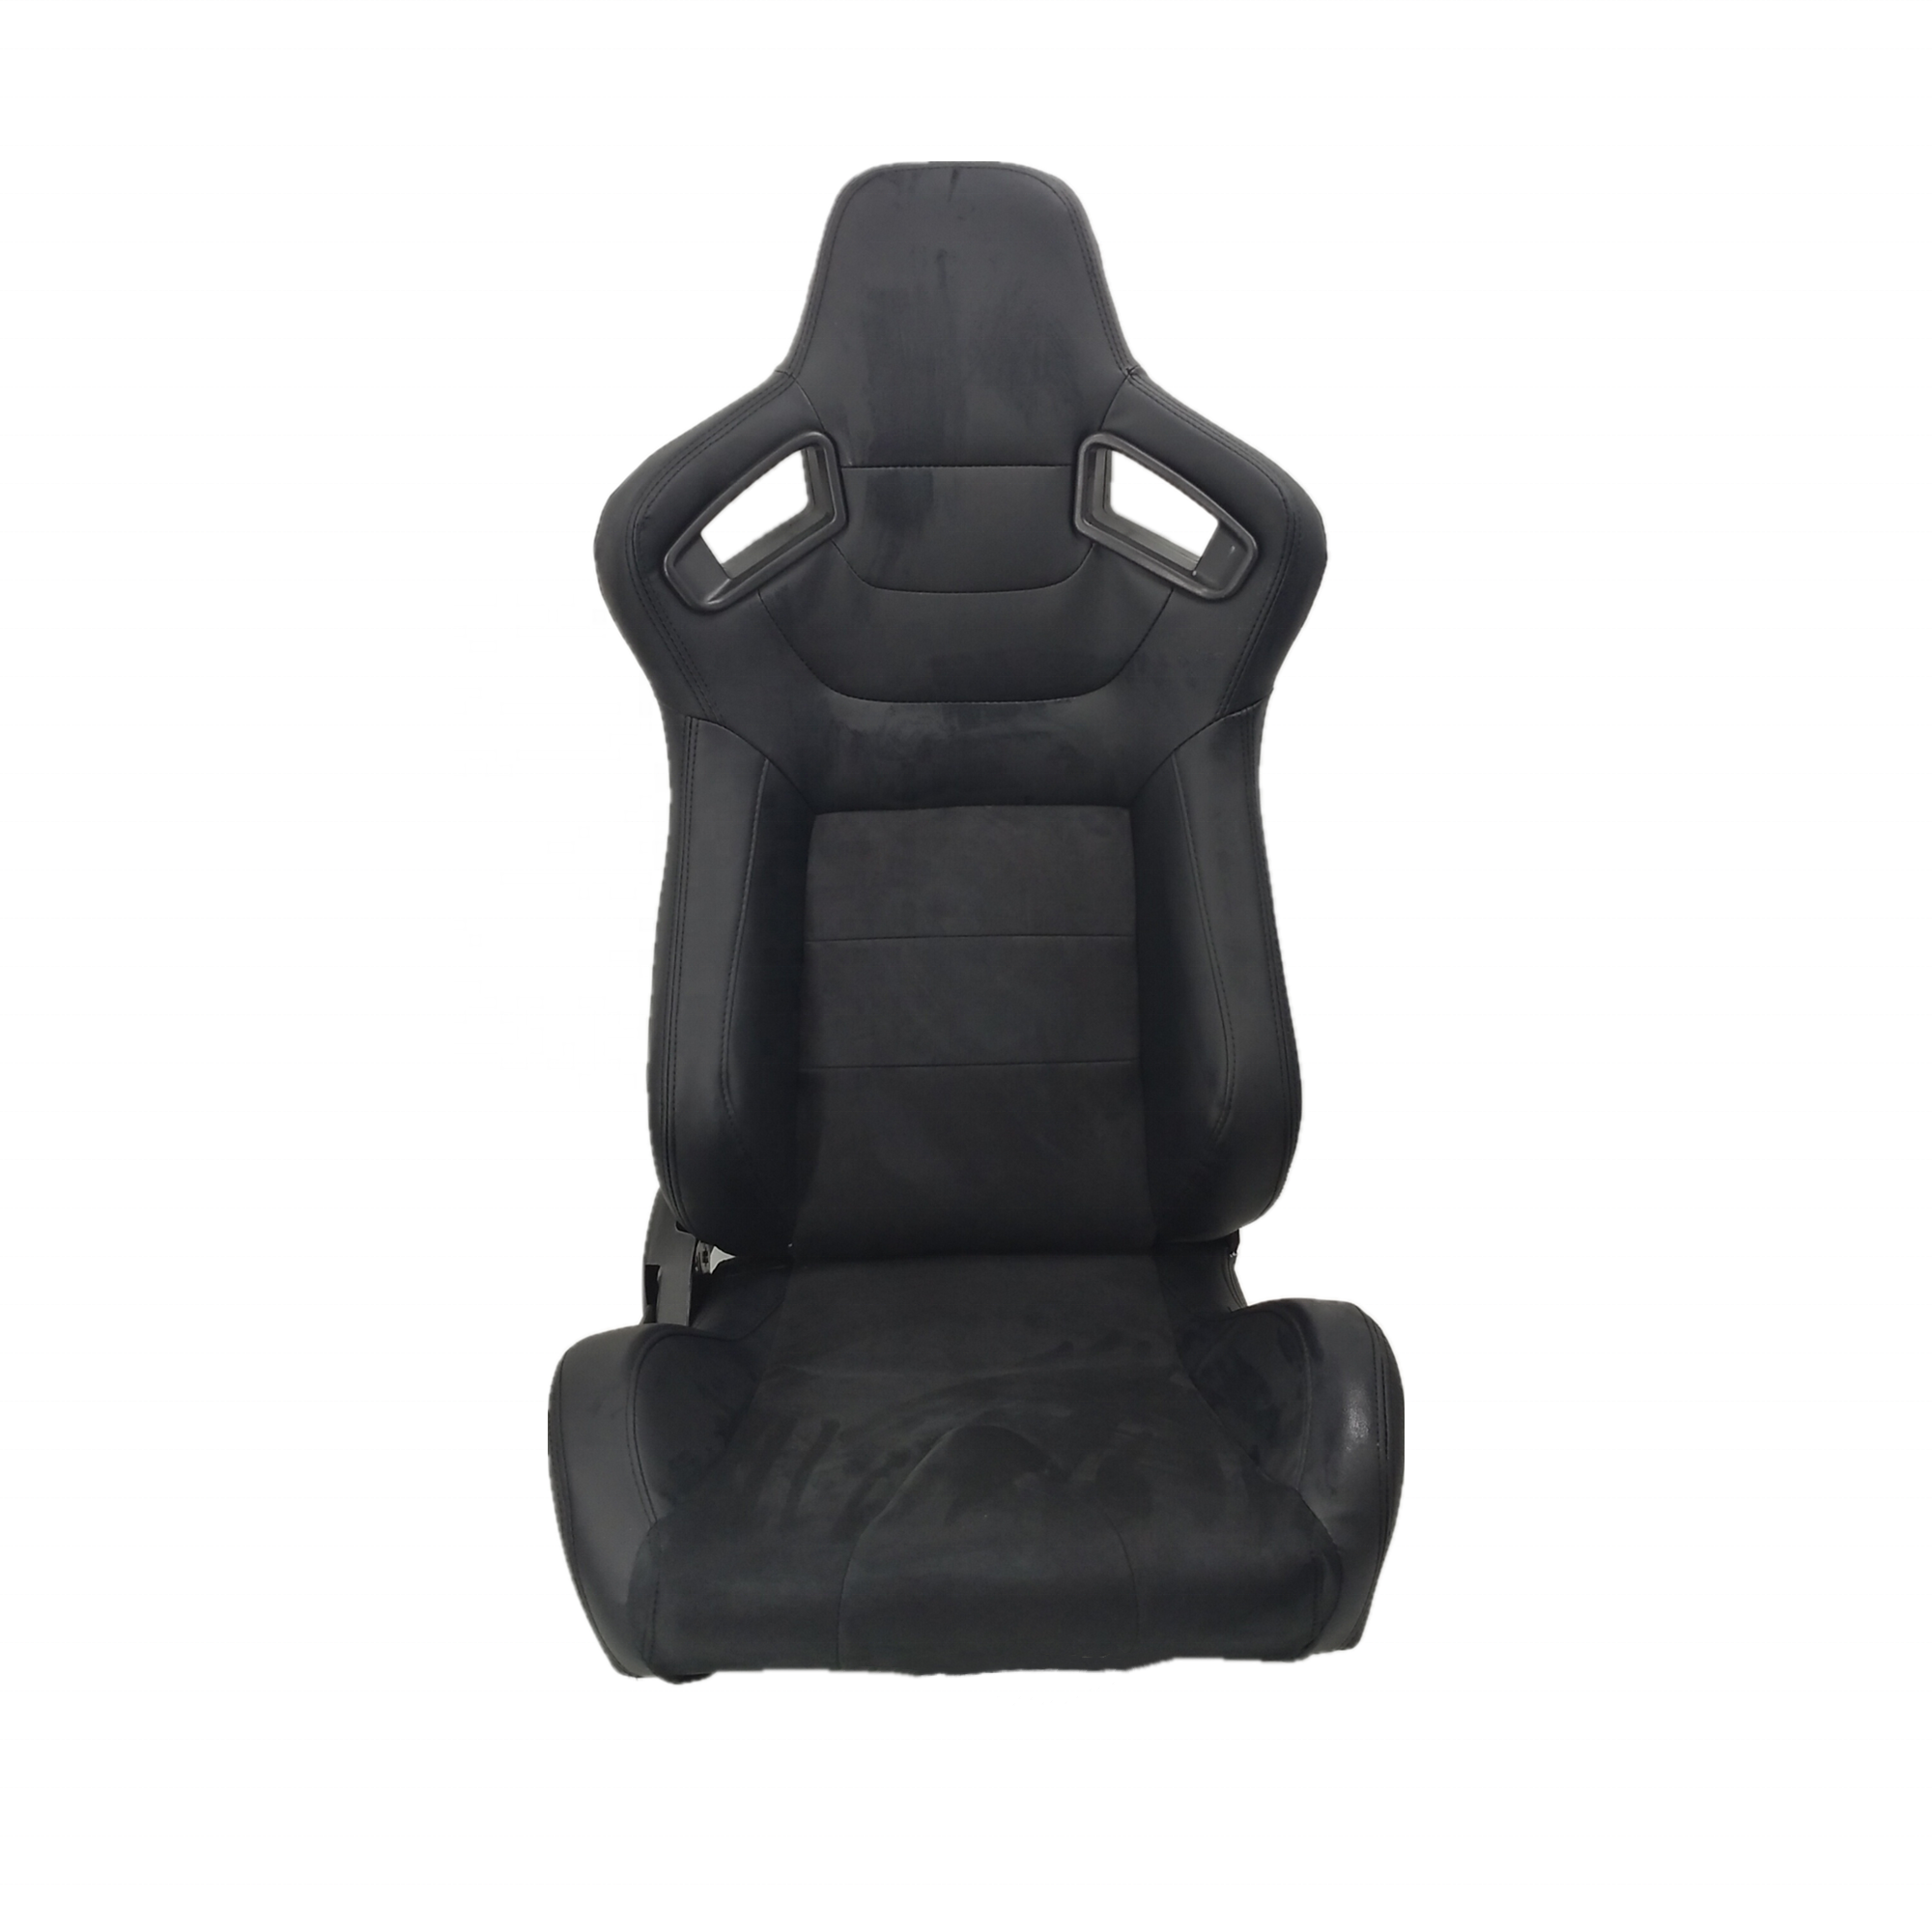 High Quality Black PVC Leather And Suede Racing Seat Black Stitch With Rails Bucket Seats For Racing Car